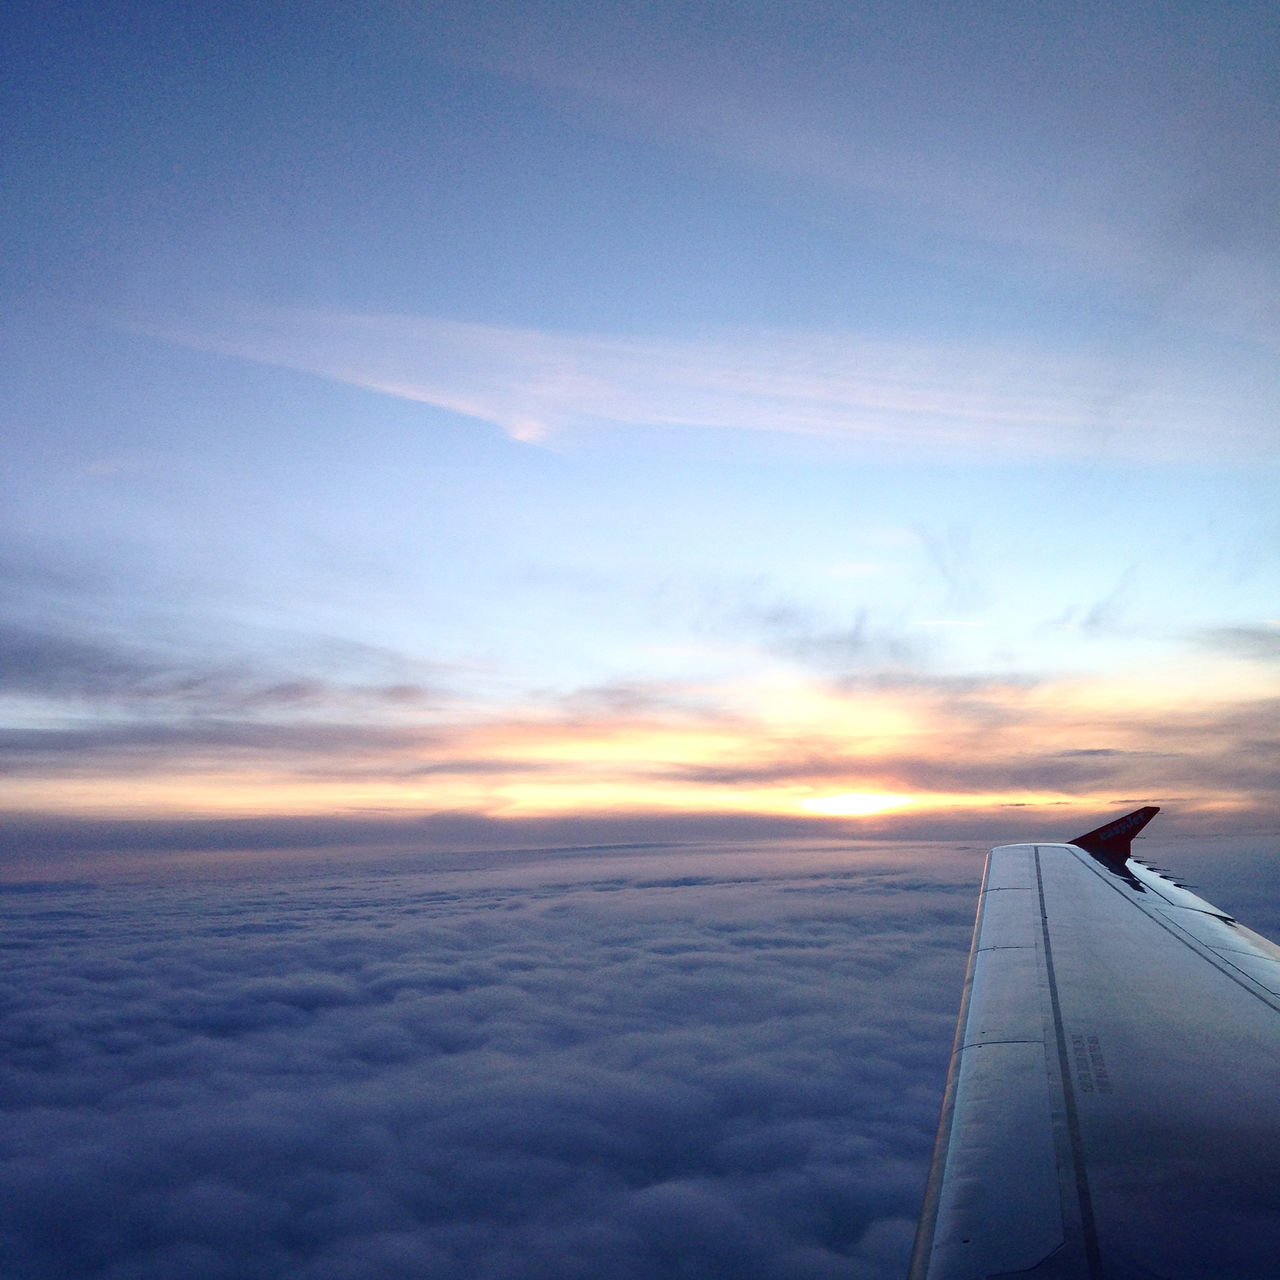 Majestic Cloudscape Seen From Airplane